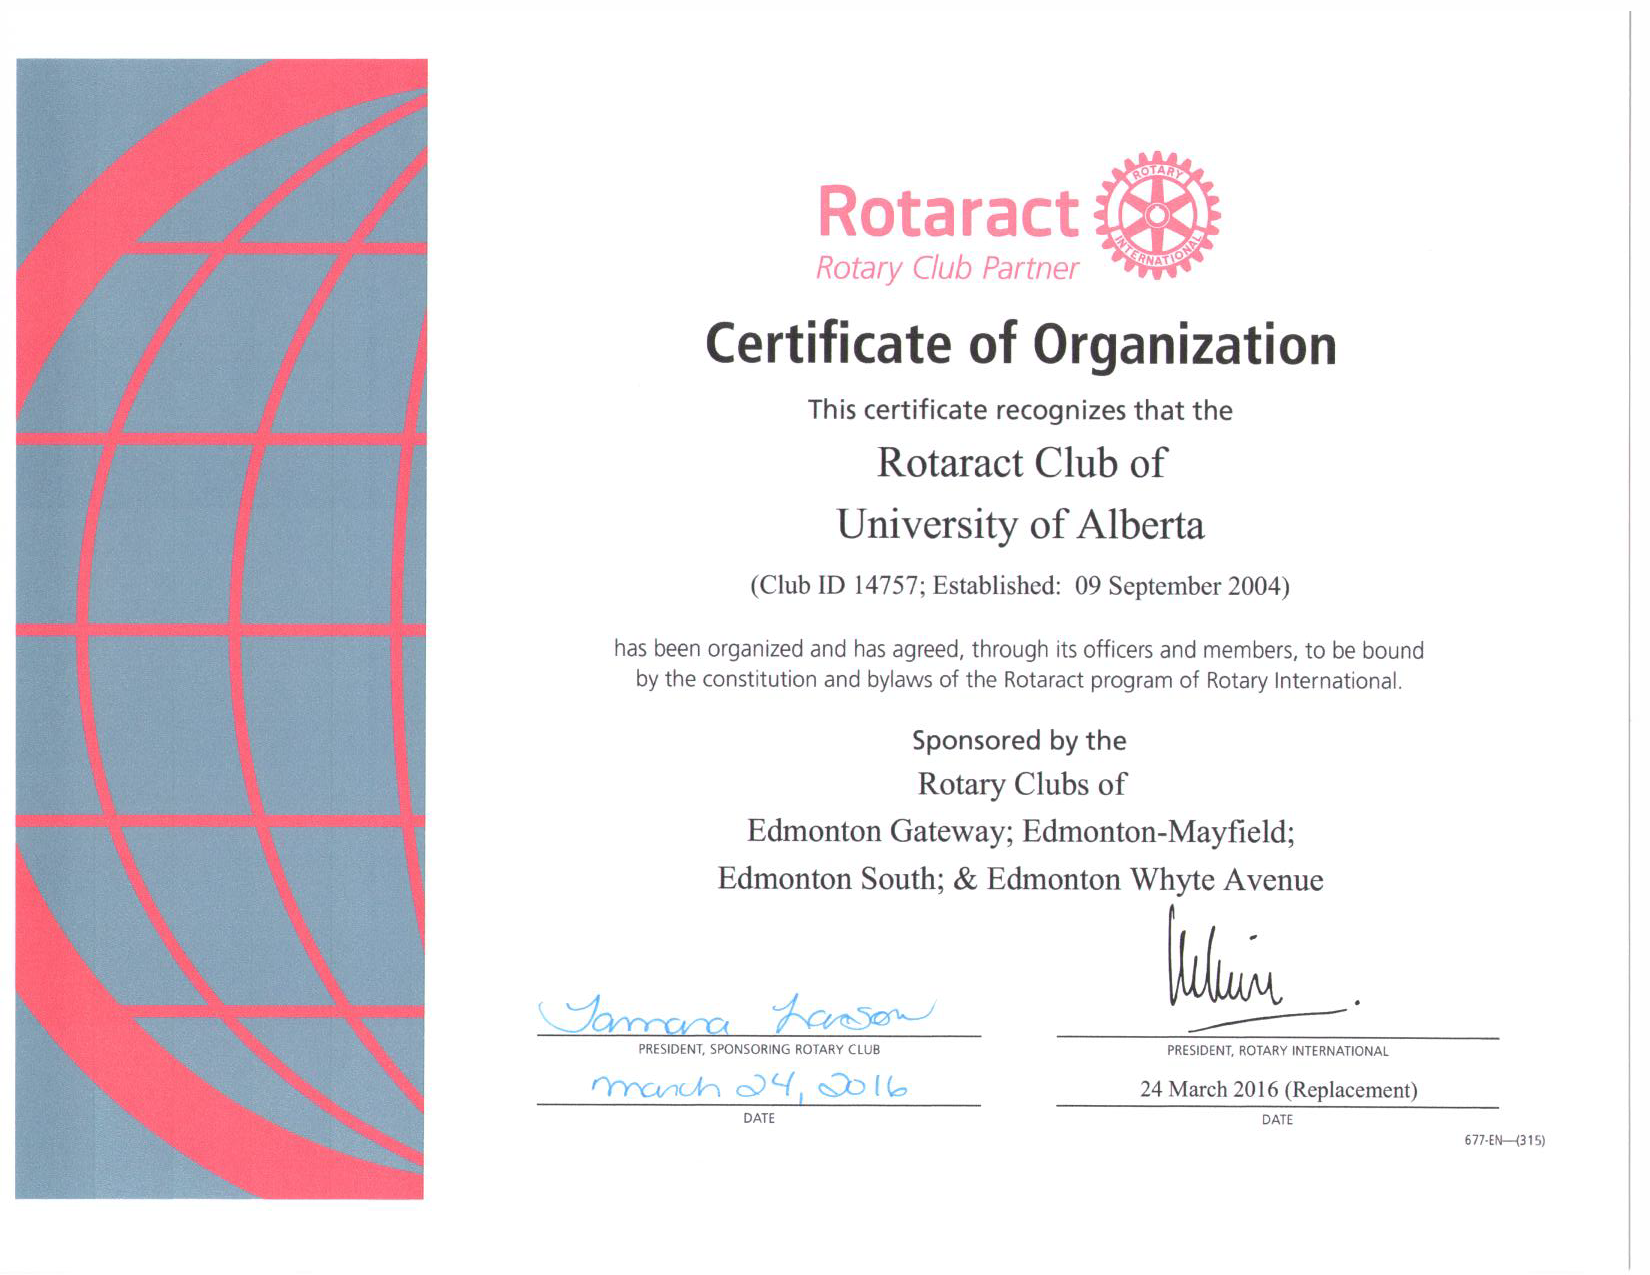 Announcing Our New Partnership With The Rotaract Club From